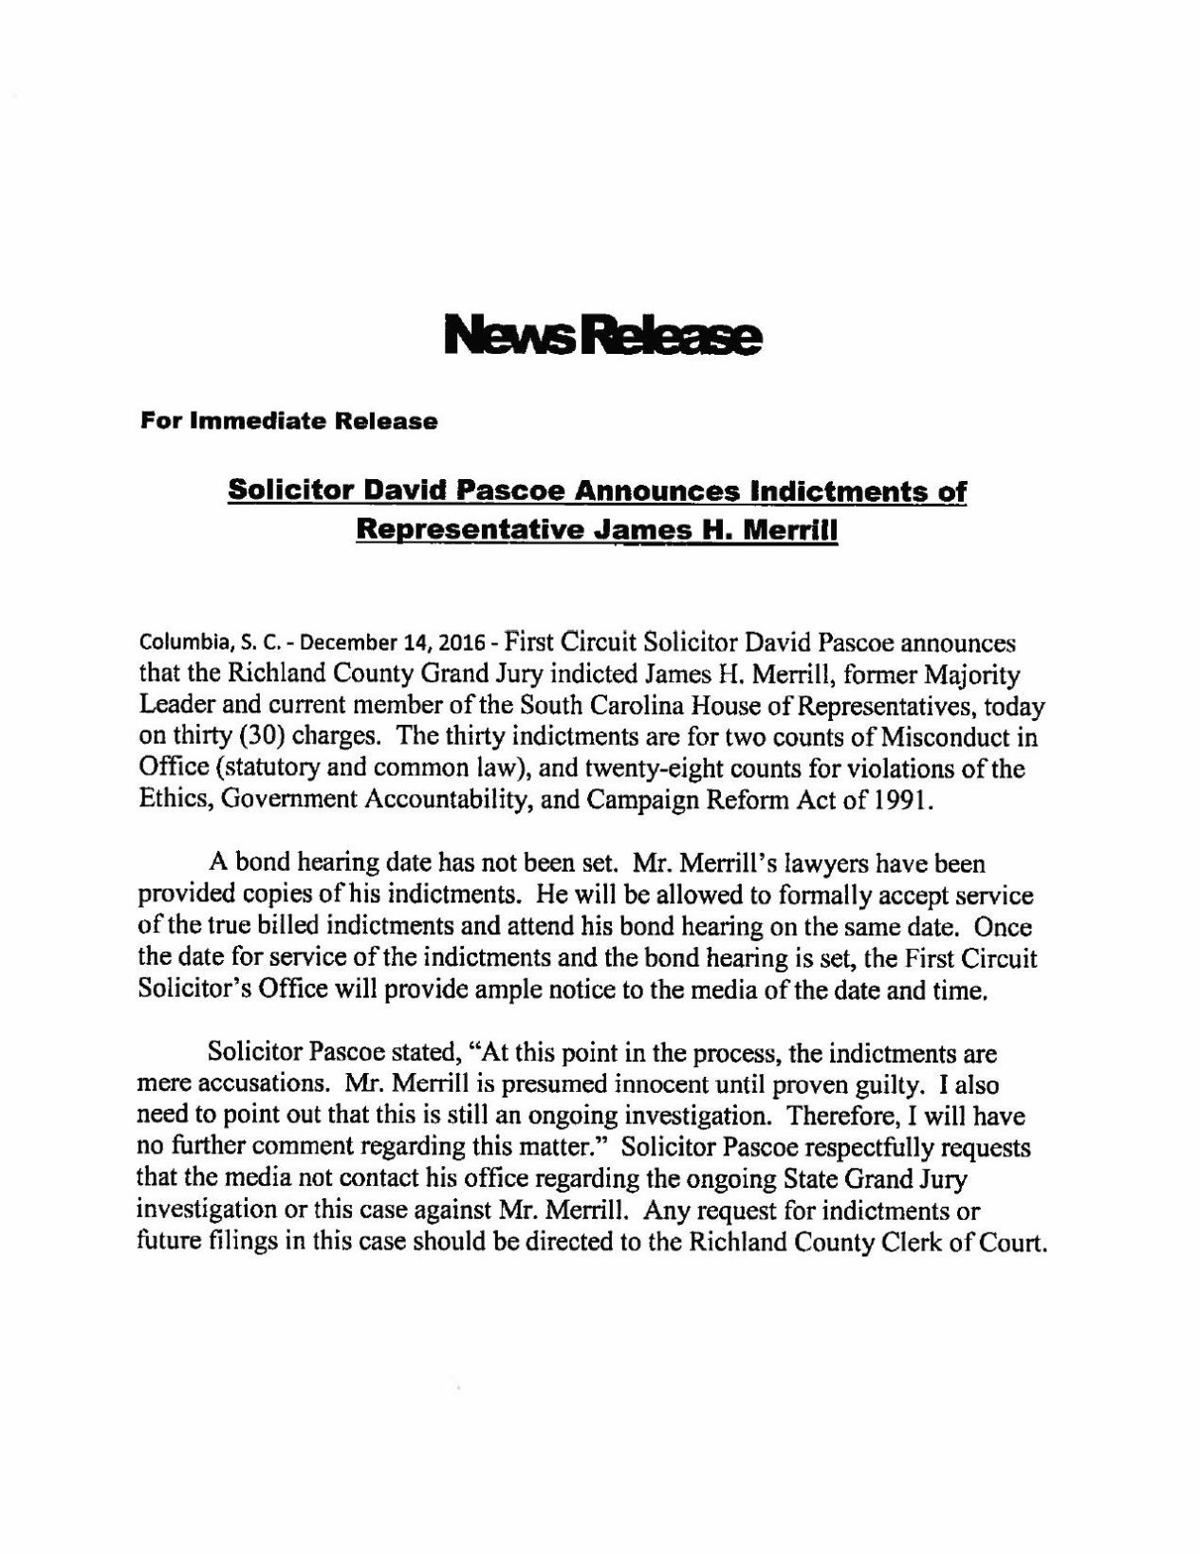 Press Release and Indictments on James H  Merrill | | thetandd com